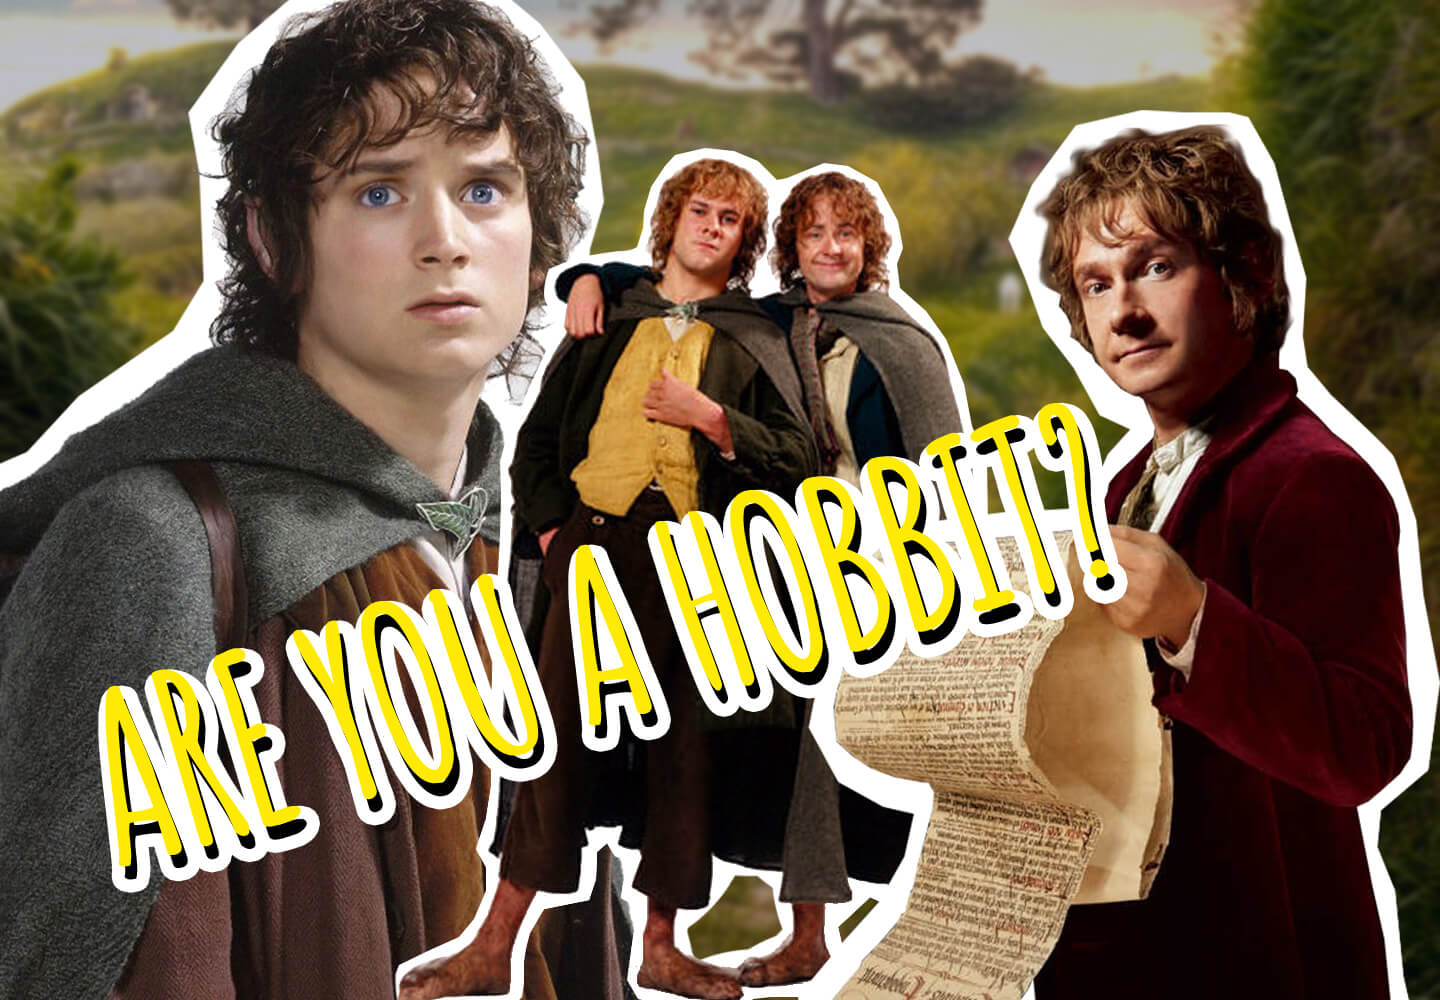 which hobbit are you